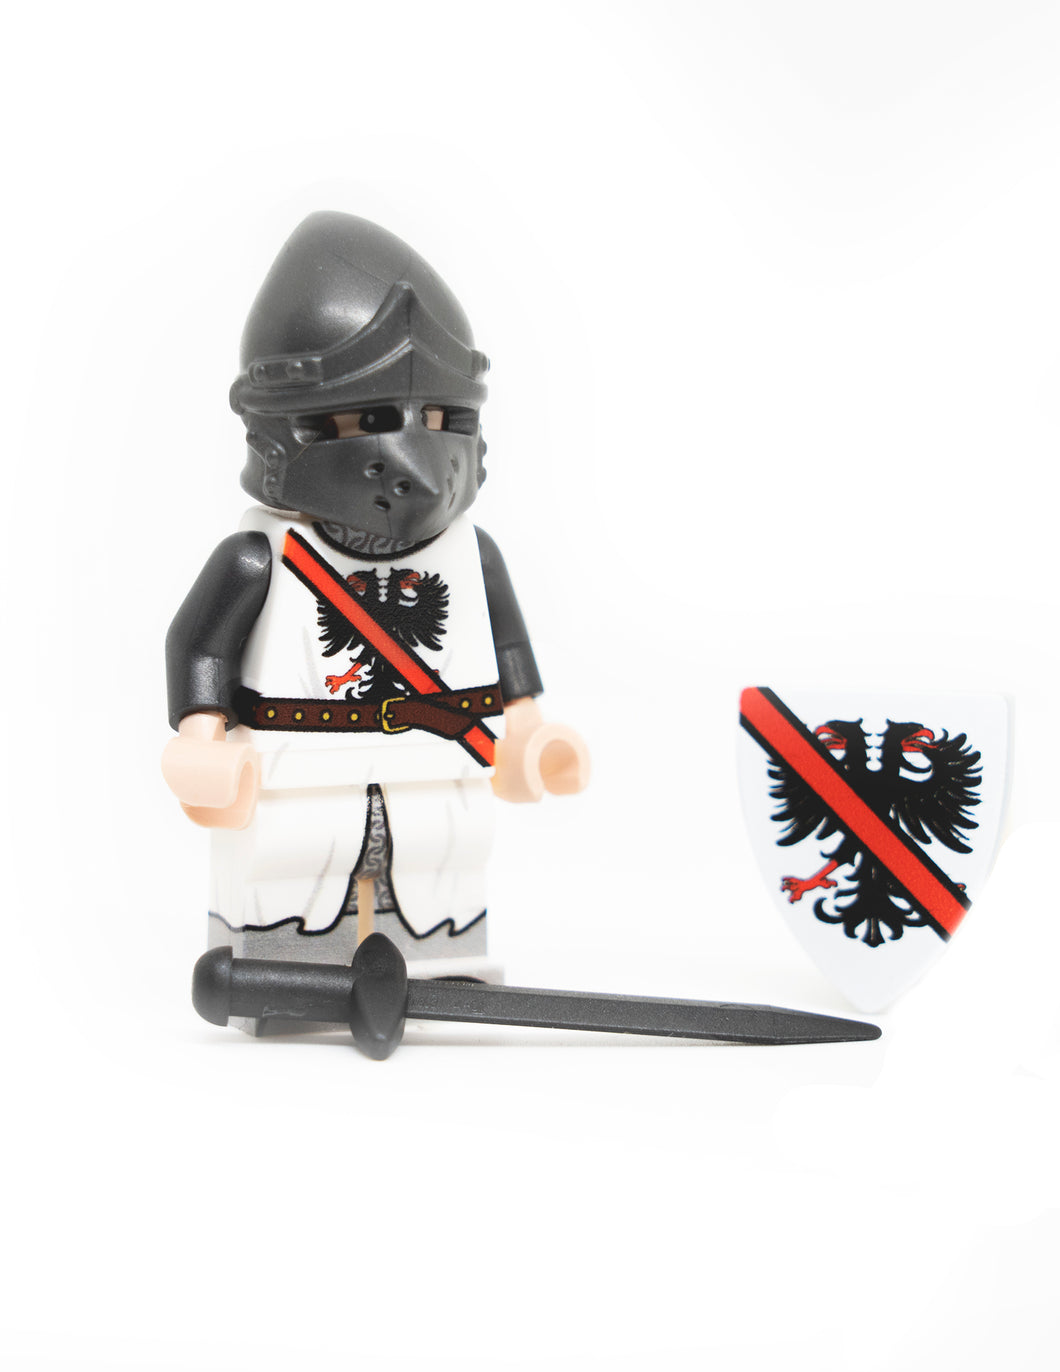 Custom Printed French Eagle Knight LEGO Minifigure with sword and shield